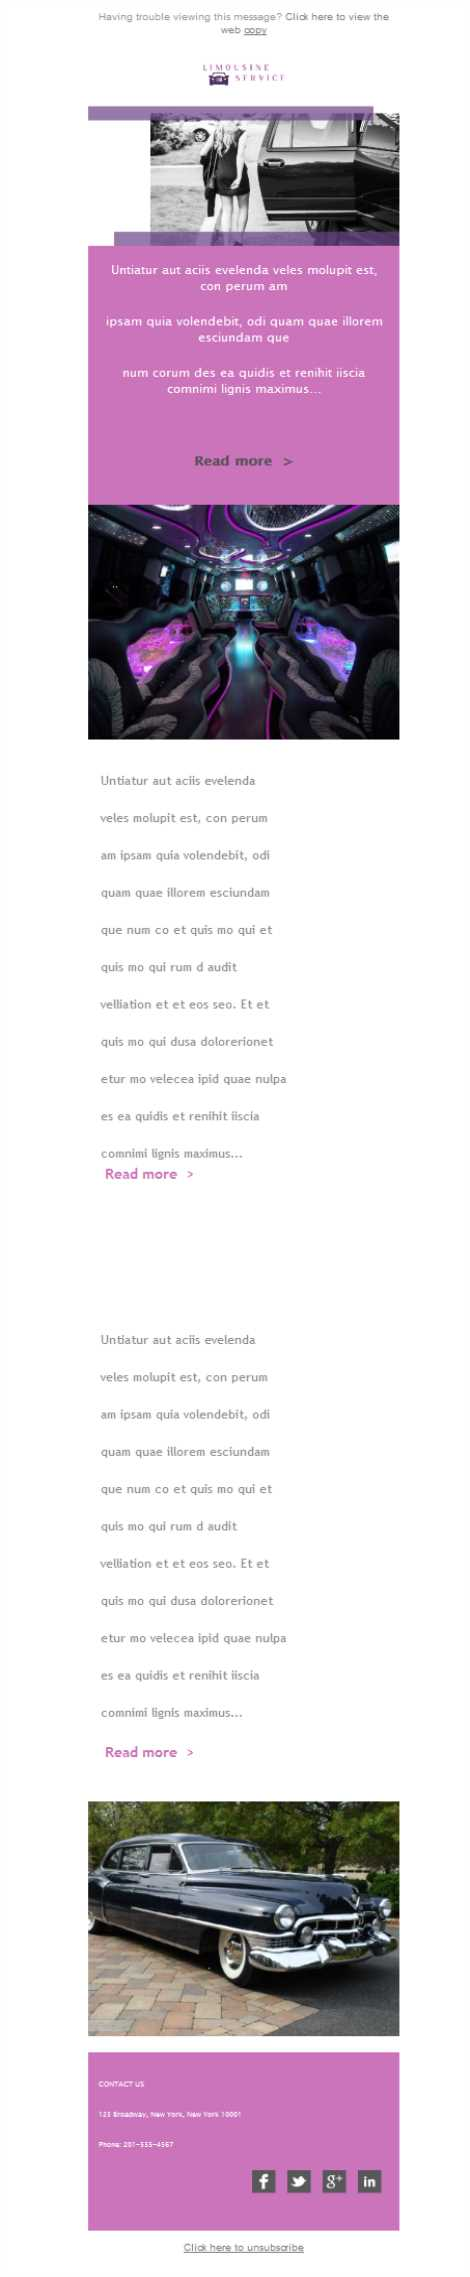 Templates Emailing Taxi Limousine Sarbacane